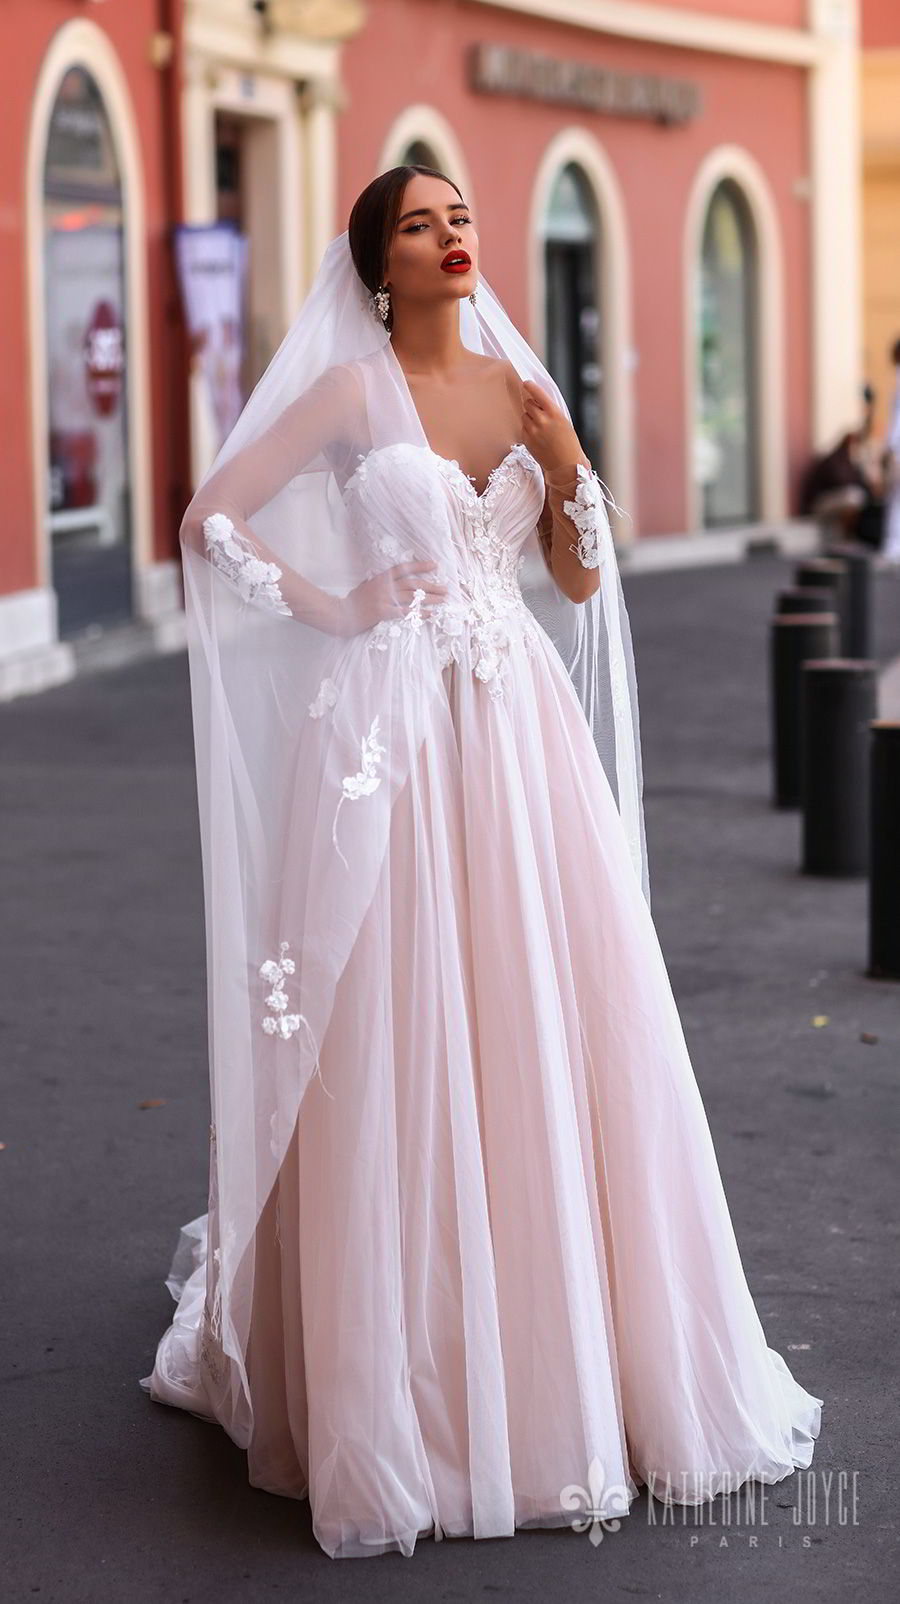 katherine joyce 2018 sheer long sleeves illusion bateau strapless sweetheart neckline heavily embellished bodice romantic pink a  line wedding dress sheer button back chapel train (catalina) mv